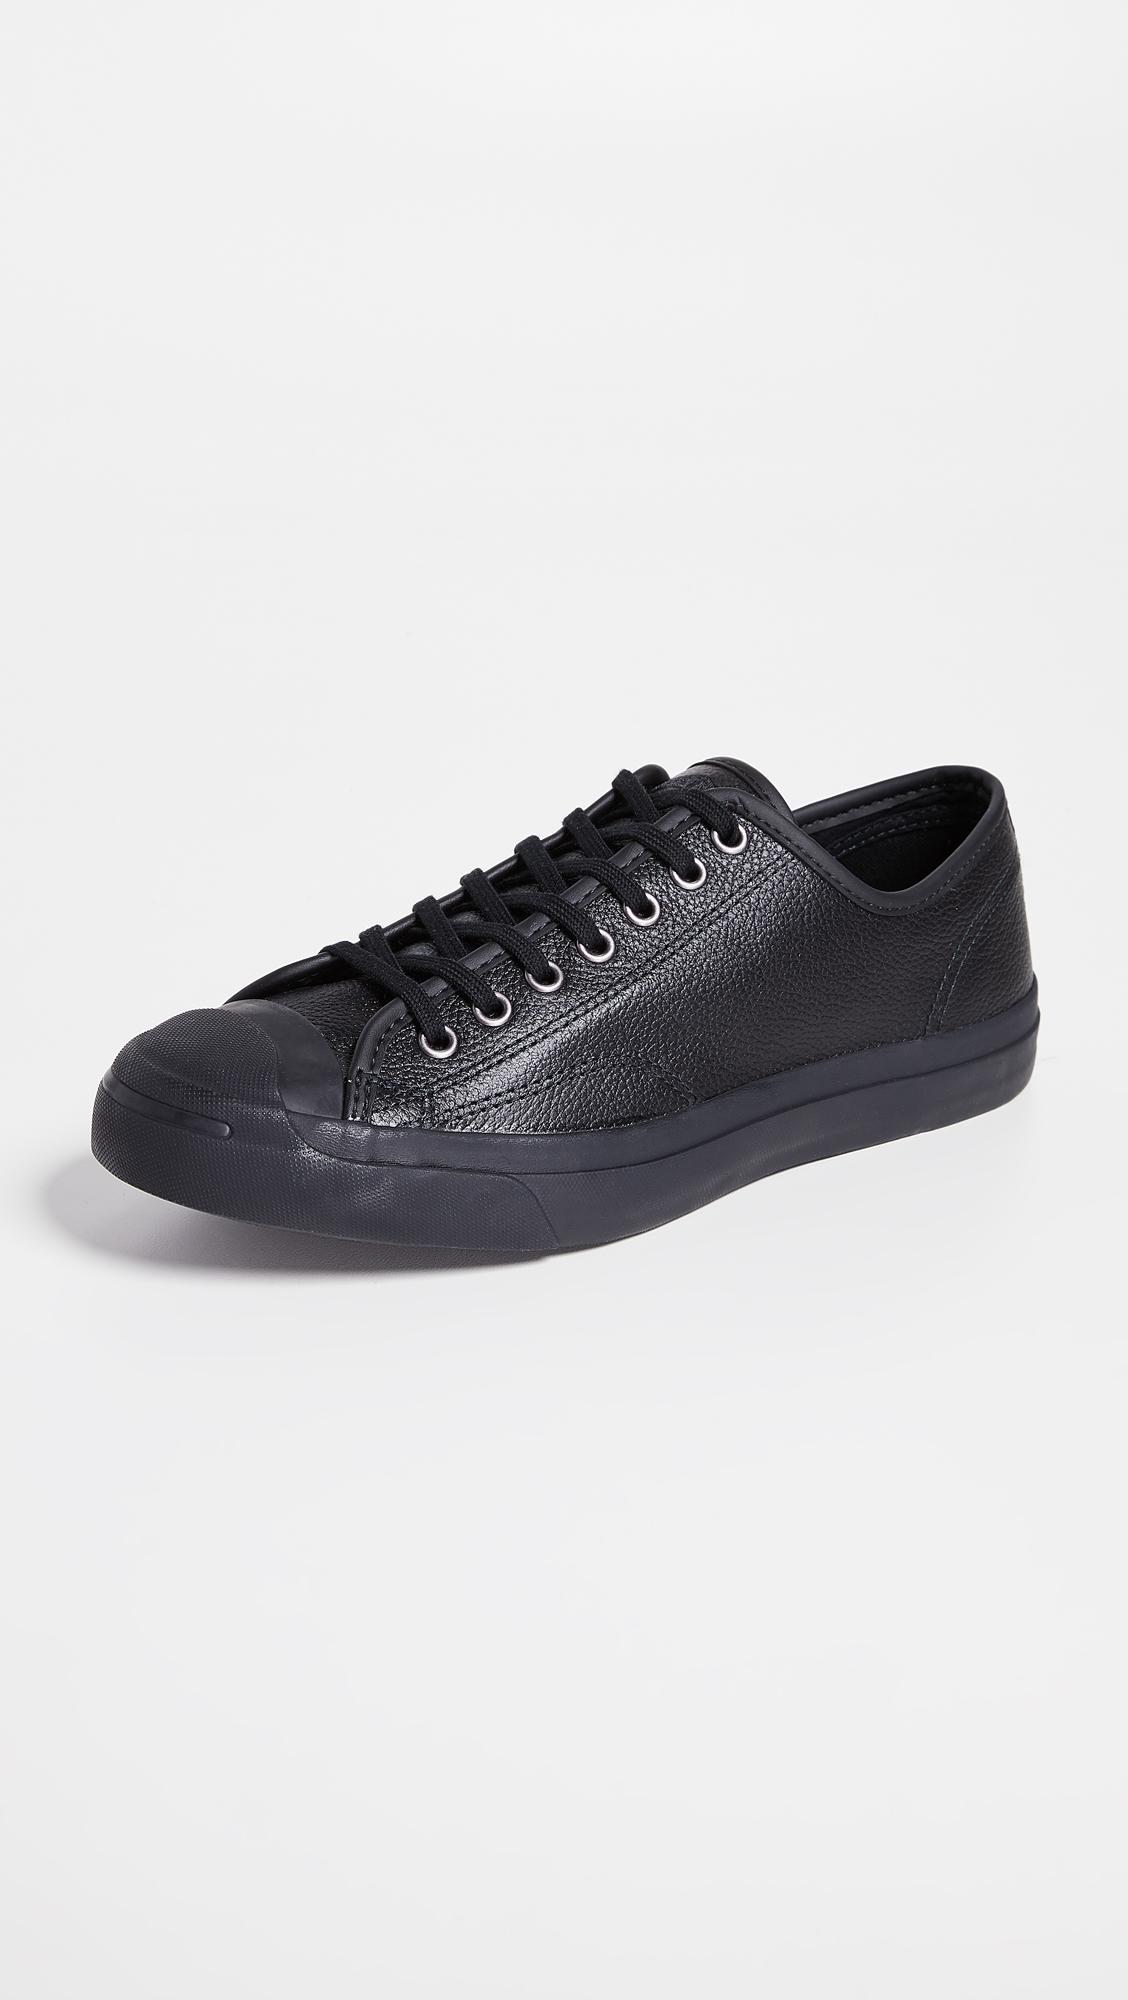 666f609438b3 Lyst - Converse Jack Purcell Low Top Sneakers in Black for Men